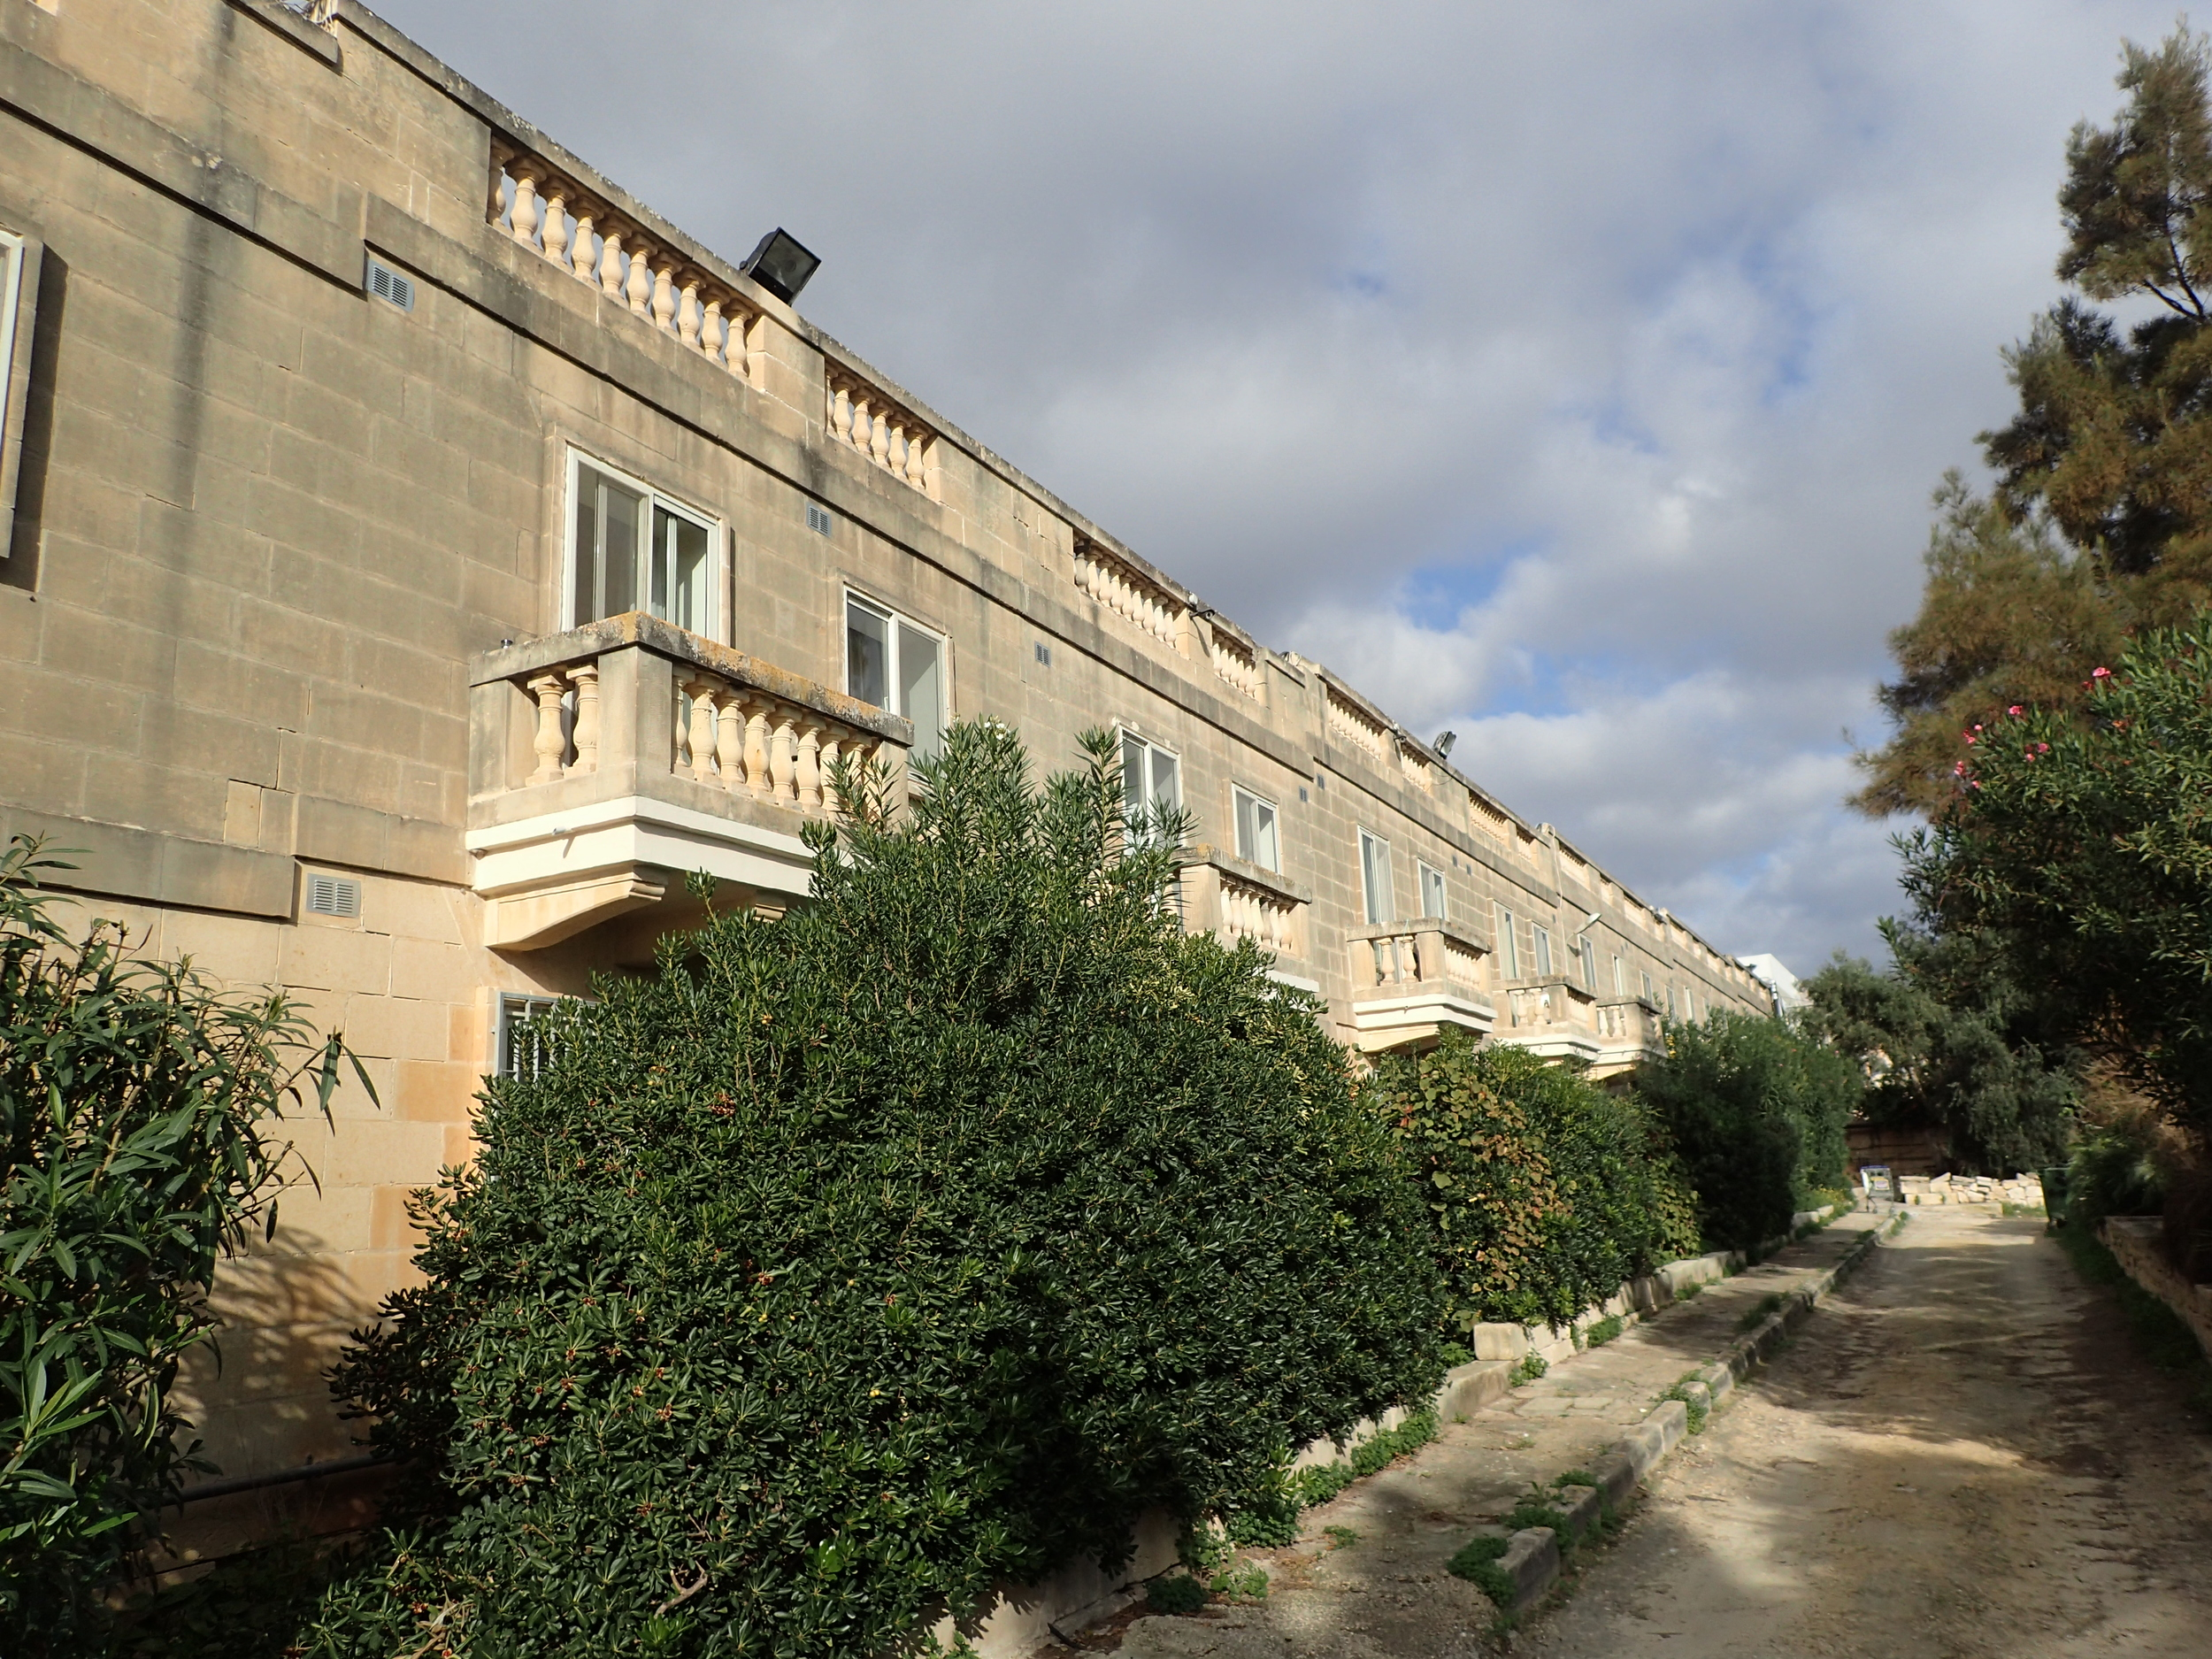 Malta University Residence as seen during the morning exercise.